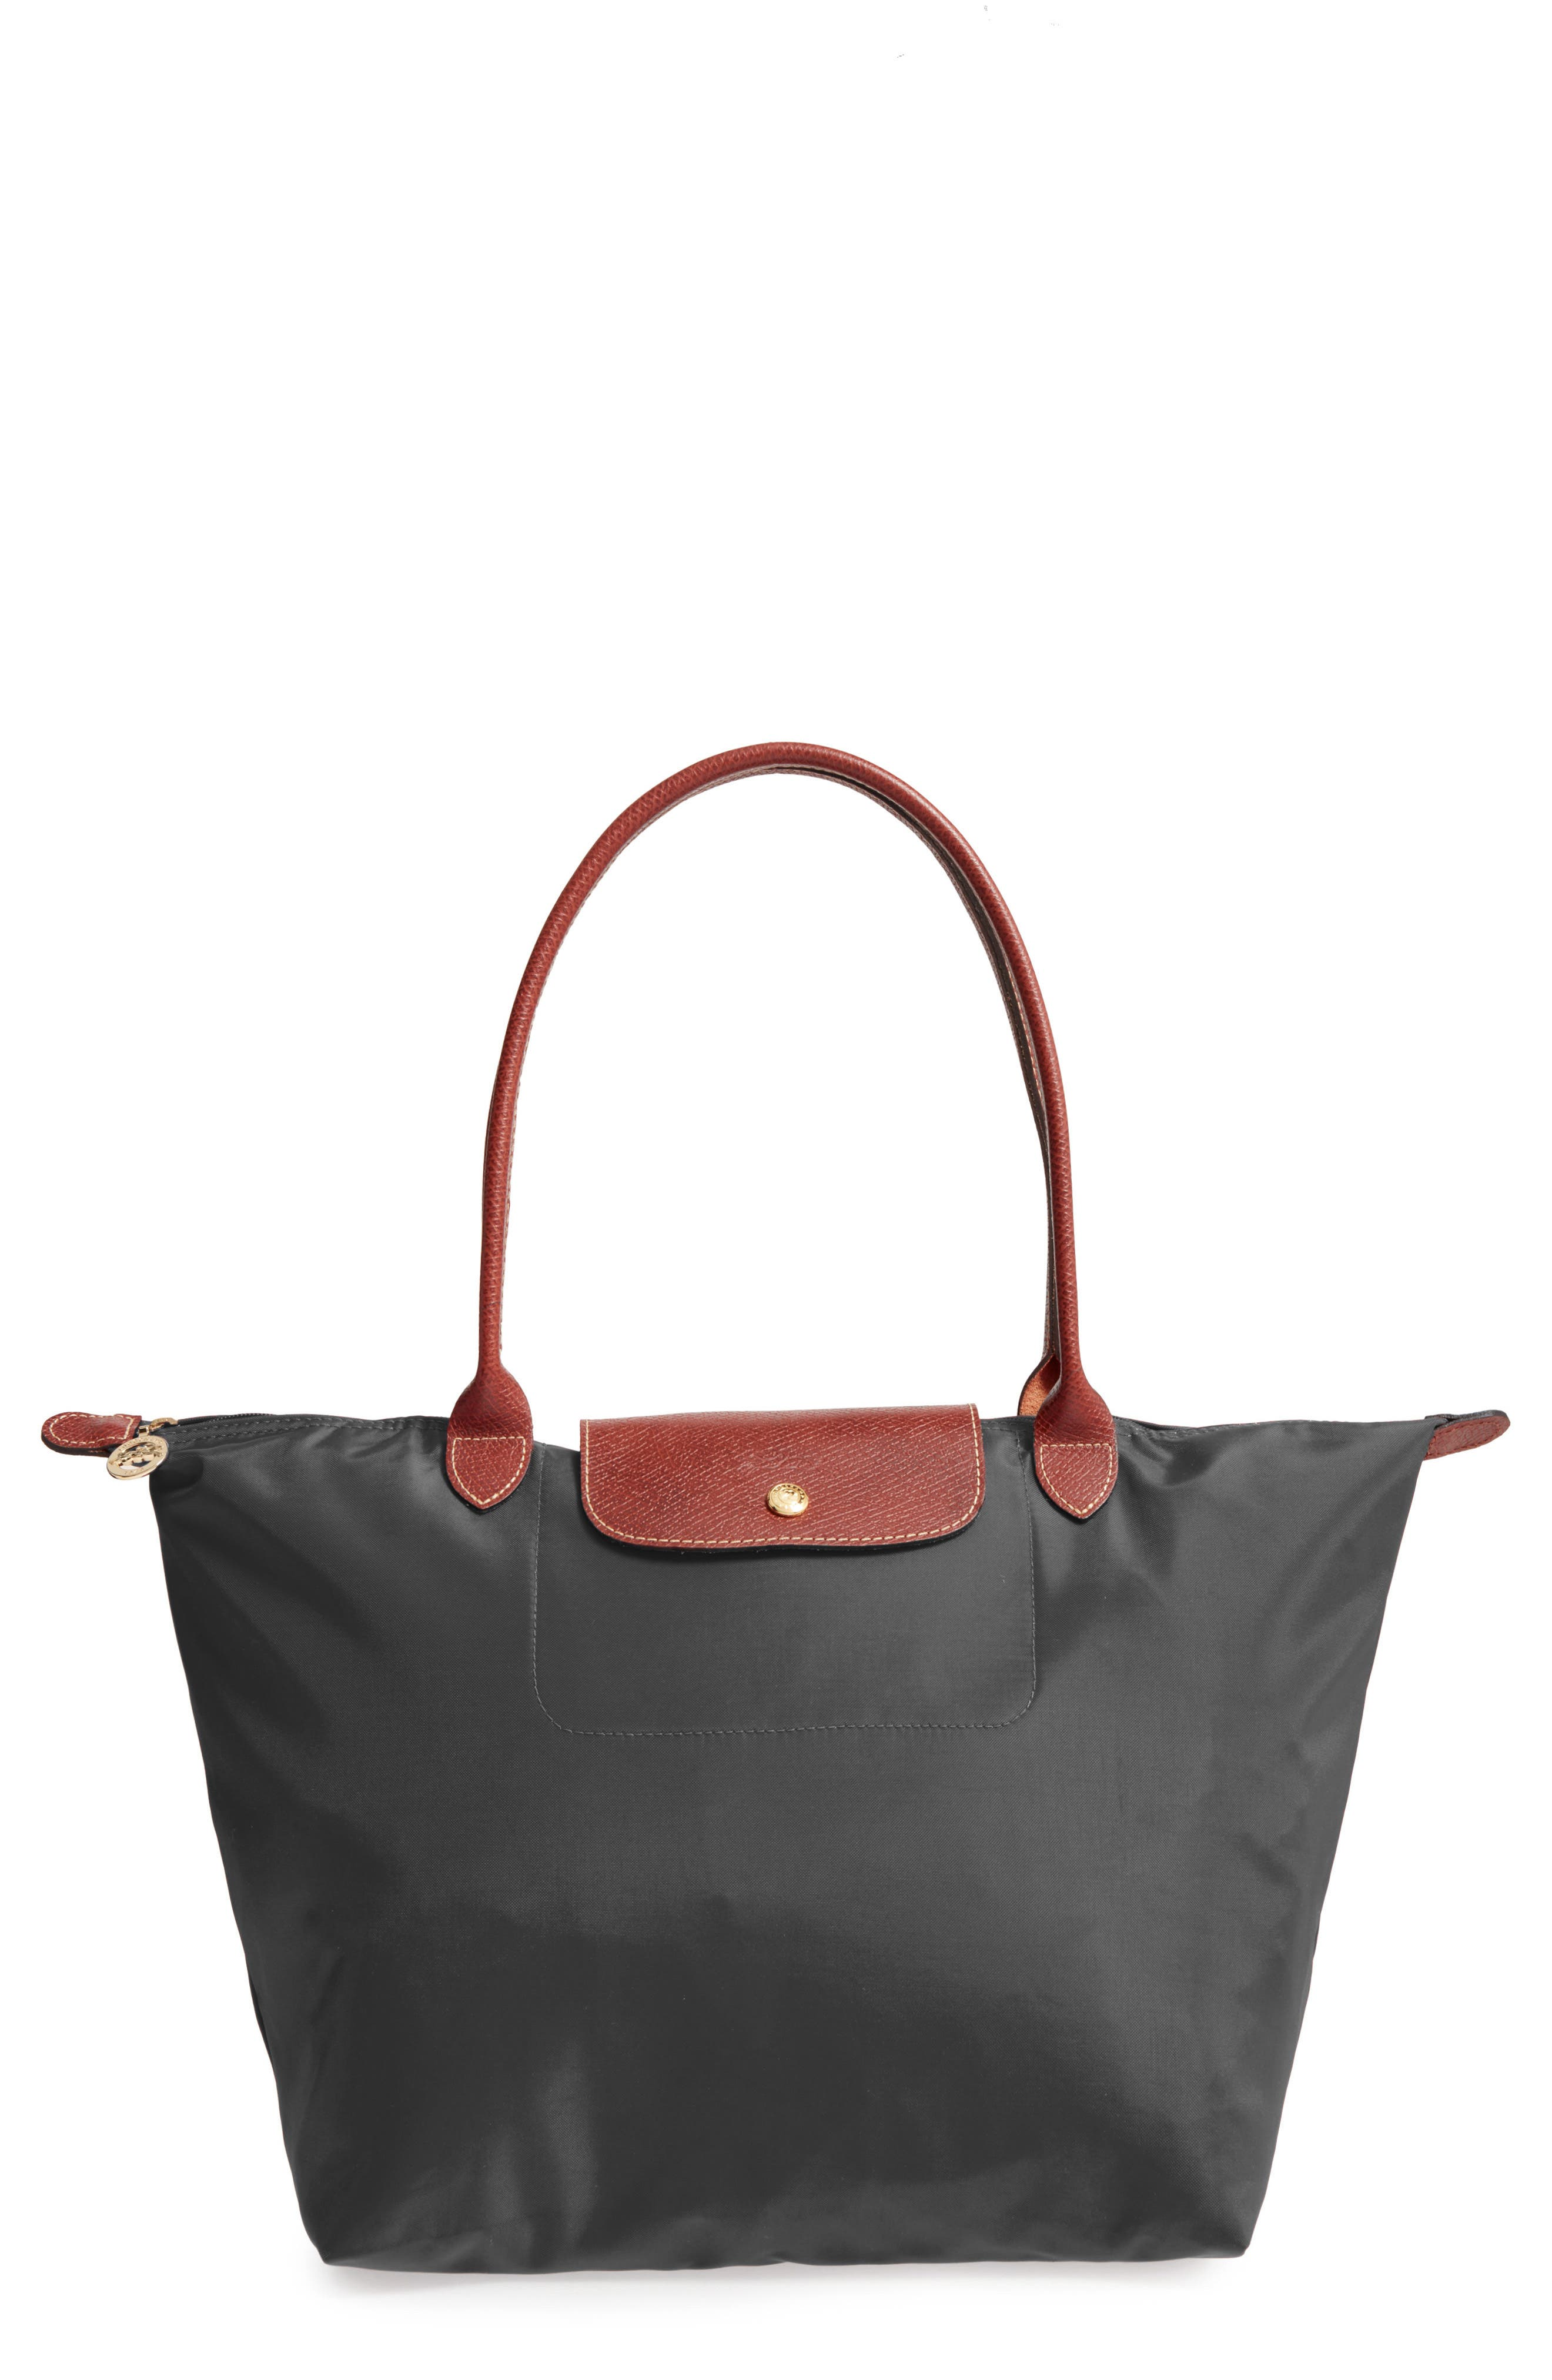 f00e711fe Tote Bags for Women: Leather, Coated Canvas, & Neoprene | Nordstrom